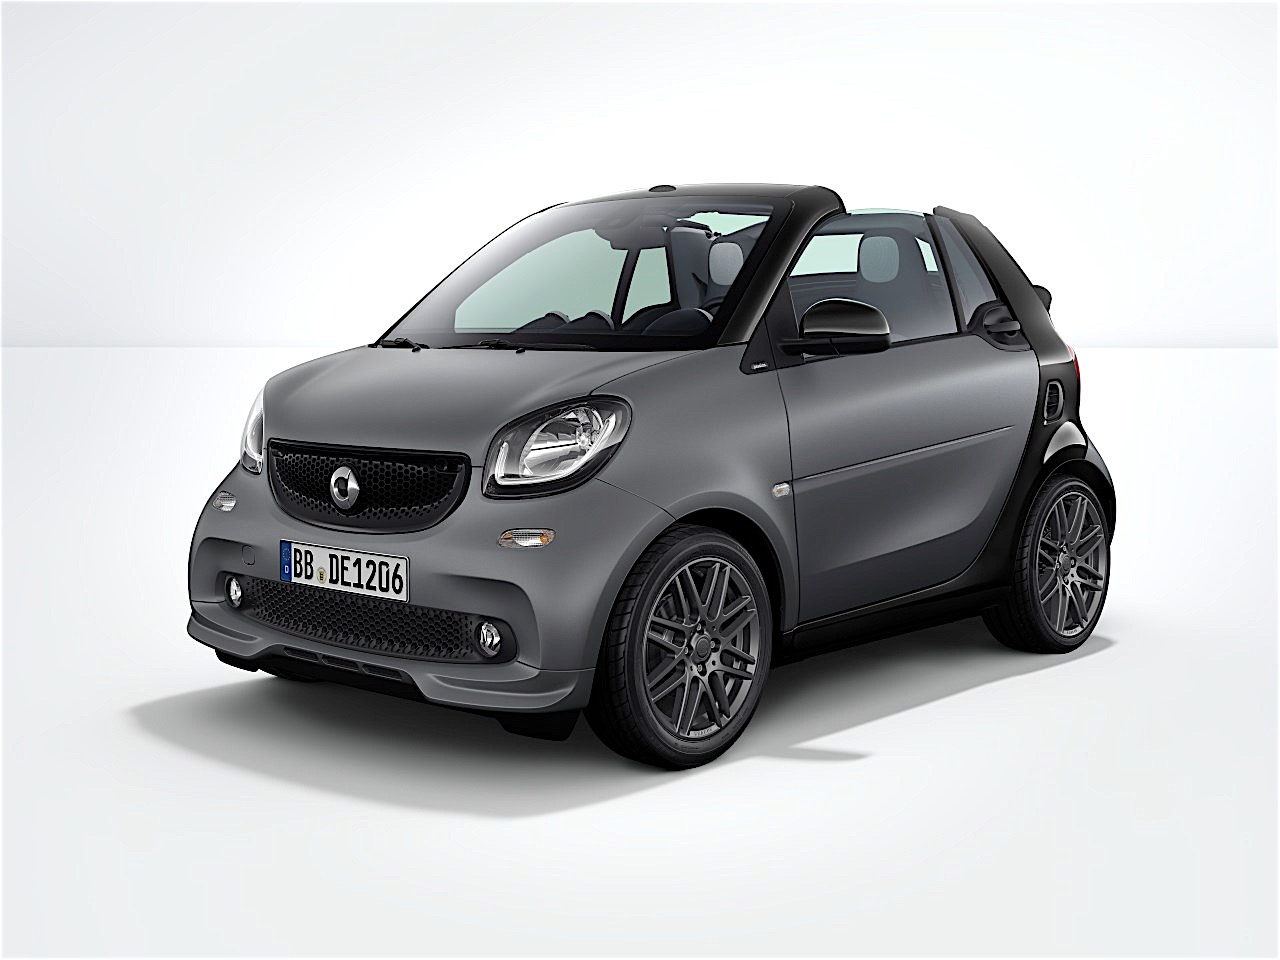 2017 smart fortwo gets brabus sport package for u s market no extra power autoevolution. Black Bedroom Furniture Sets. Home Design Ideas